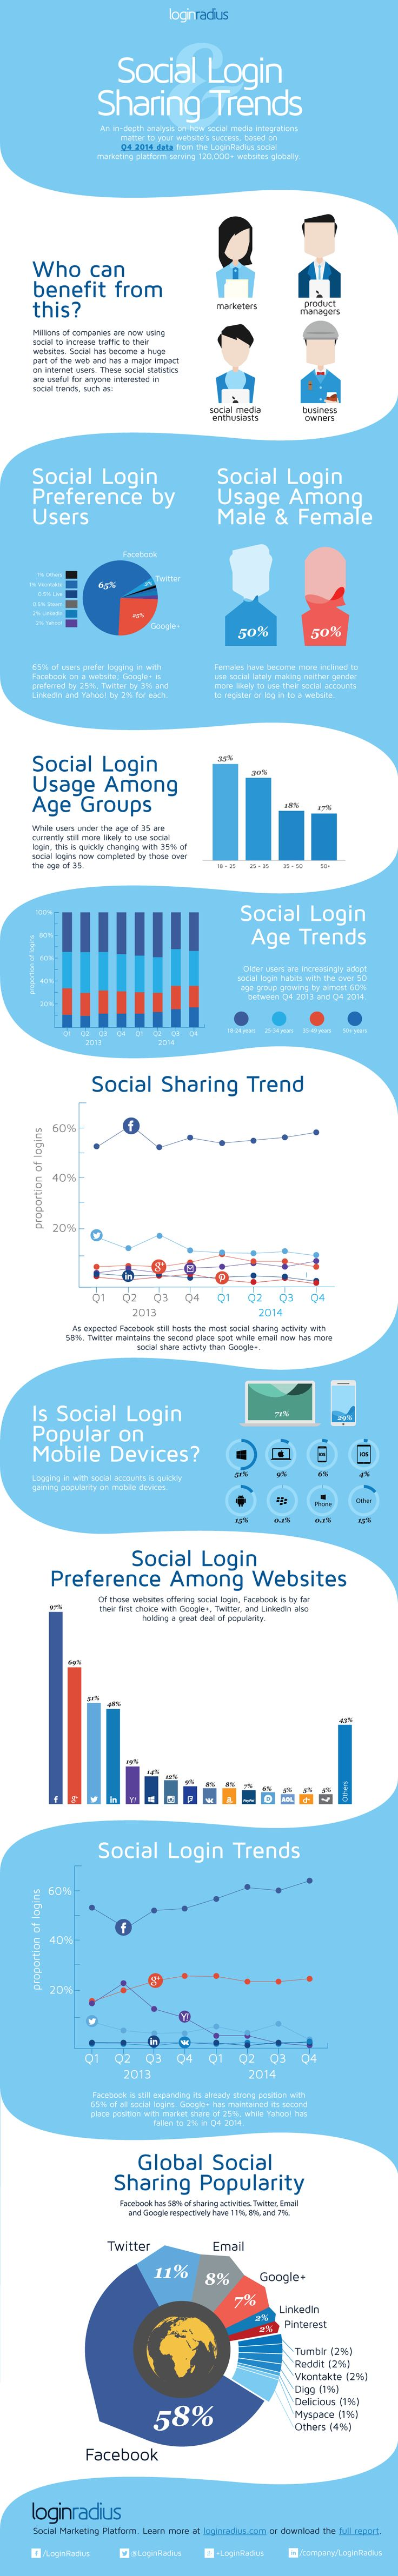 Social Login and Social Sharing Trends - Q4 2014 - #infographic #facebook #twitter